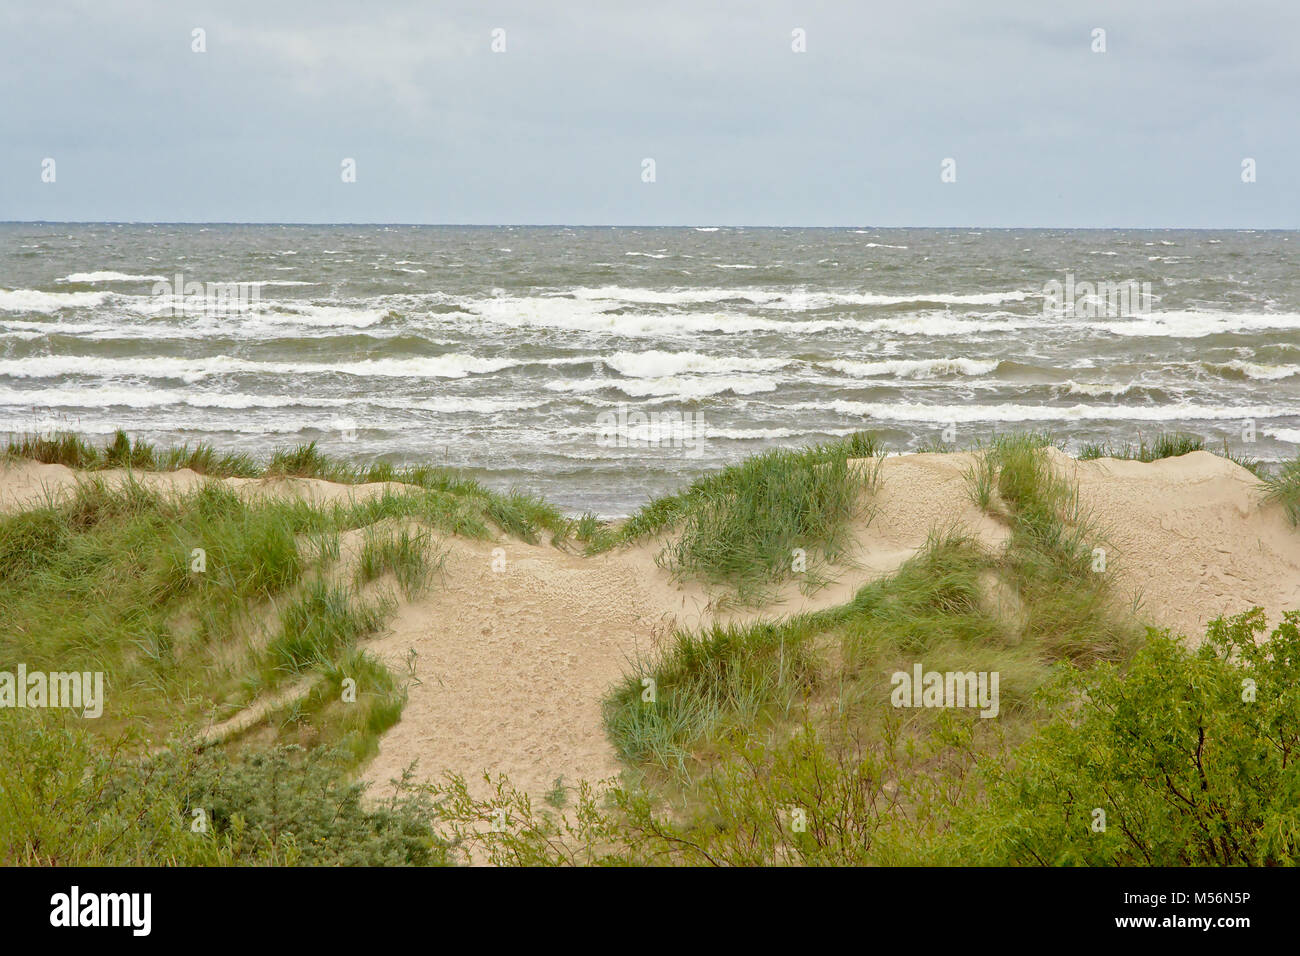 Dunes on the Baltic sea coast of Liepaja on a cloudy day, - Stock Image